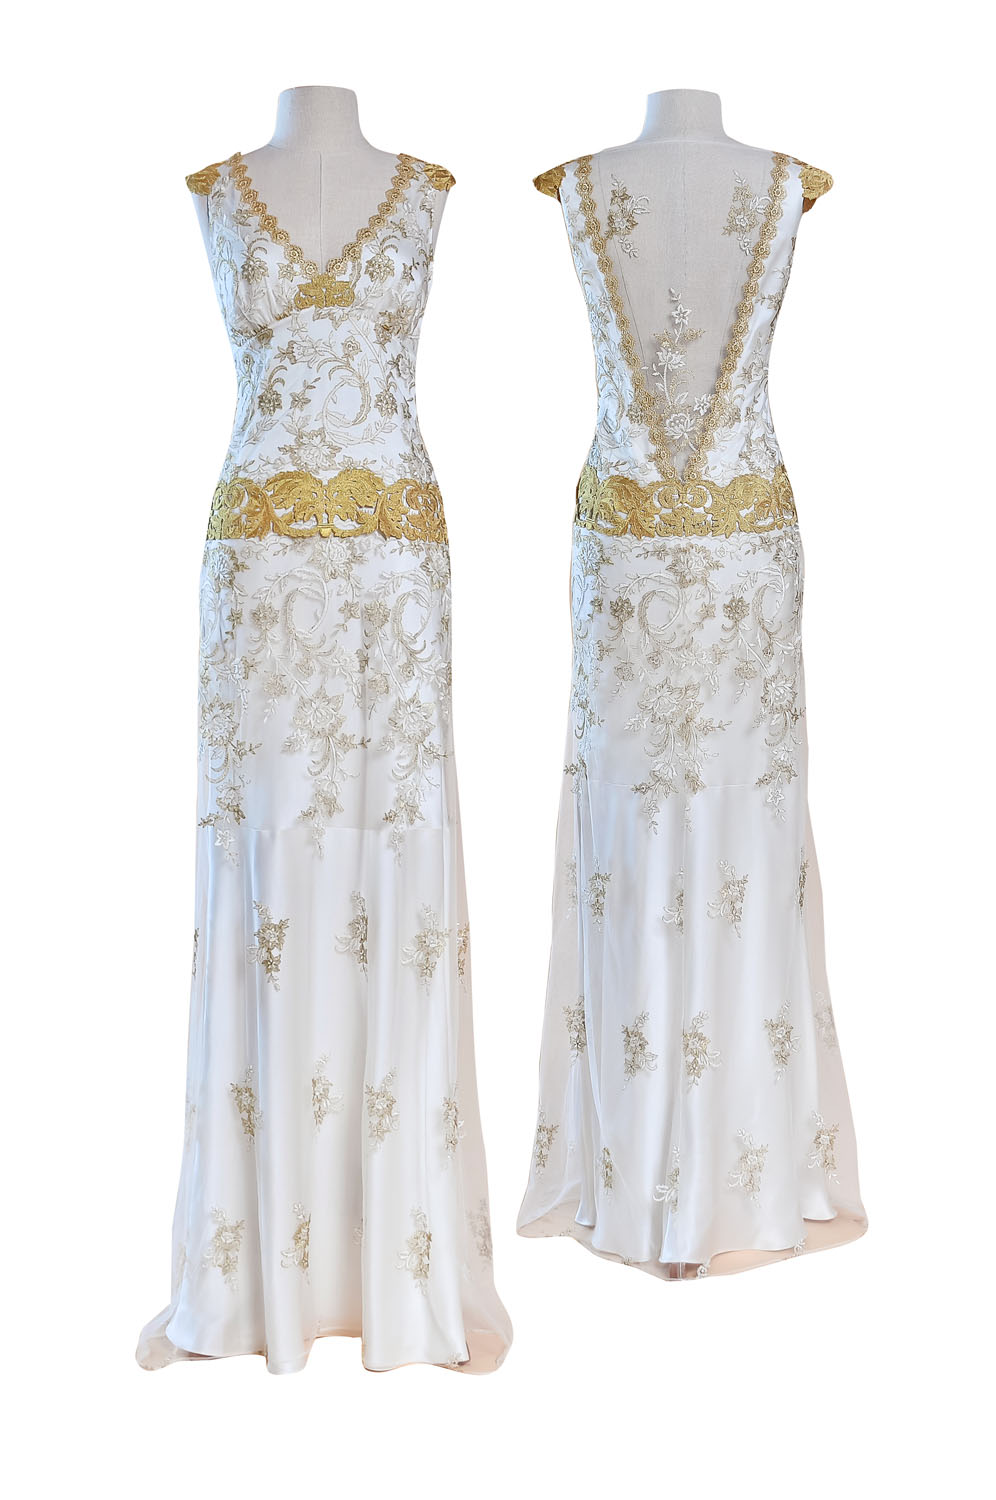 Claire pettibone 2013 spring summer bridal collection for Wedding dresses eau claire wi